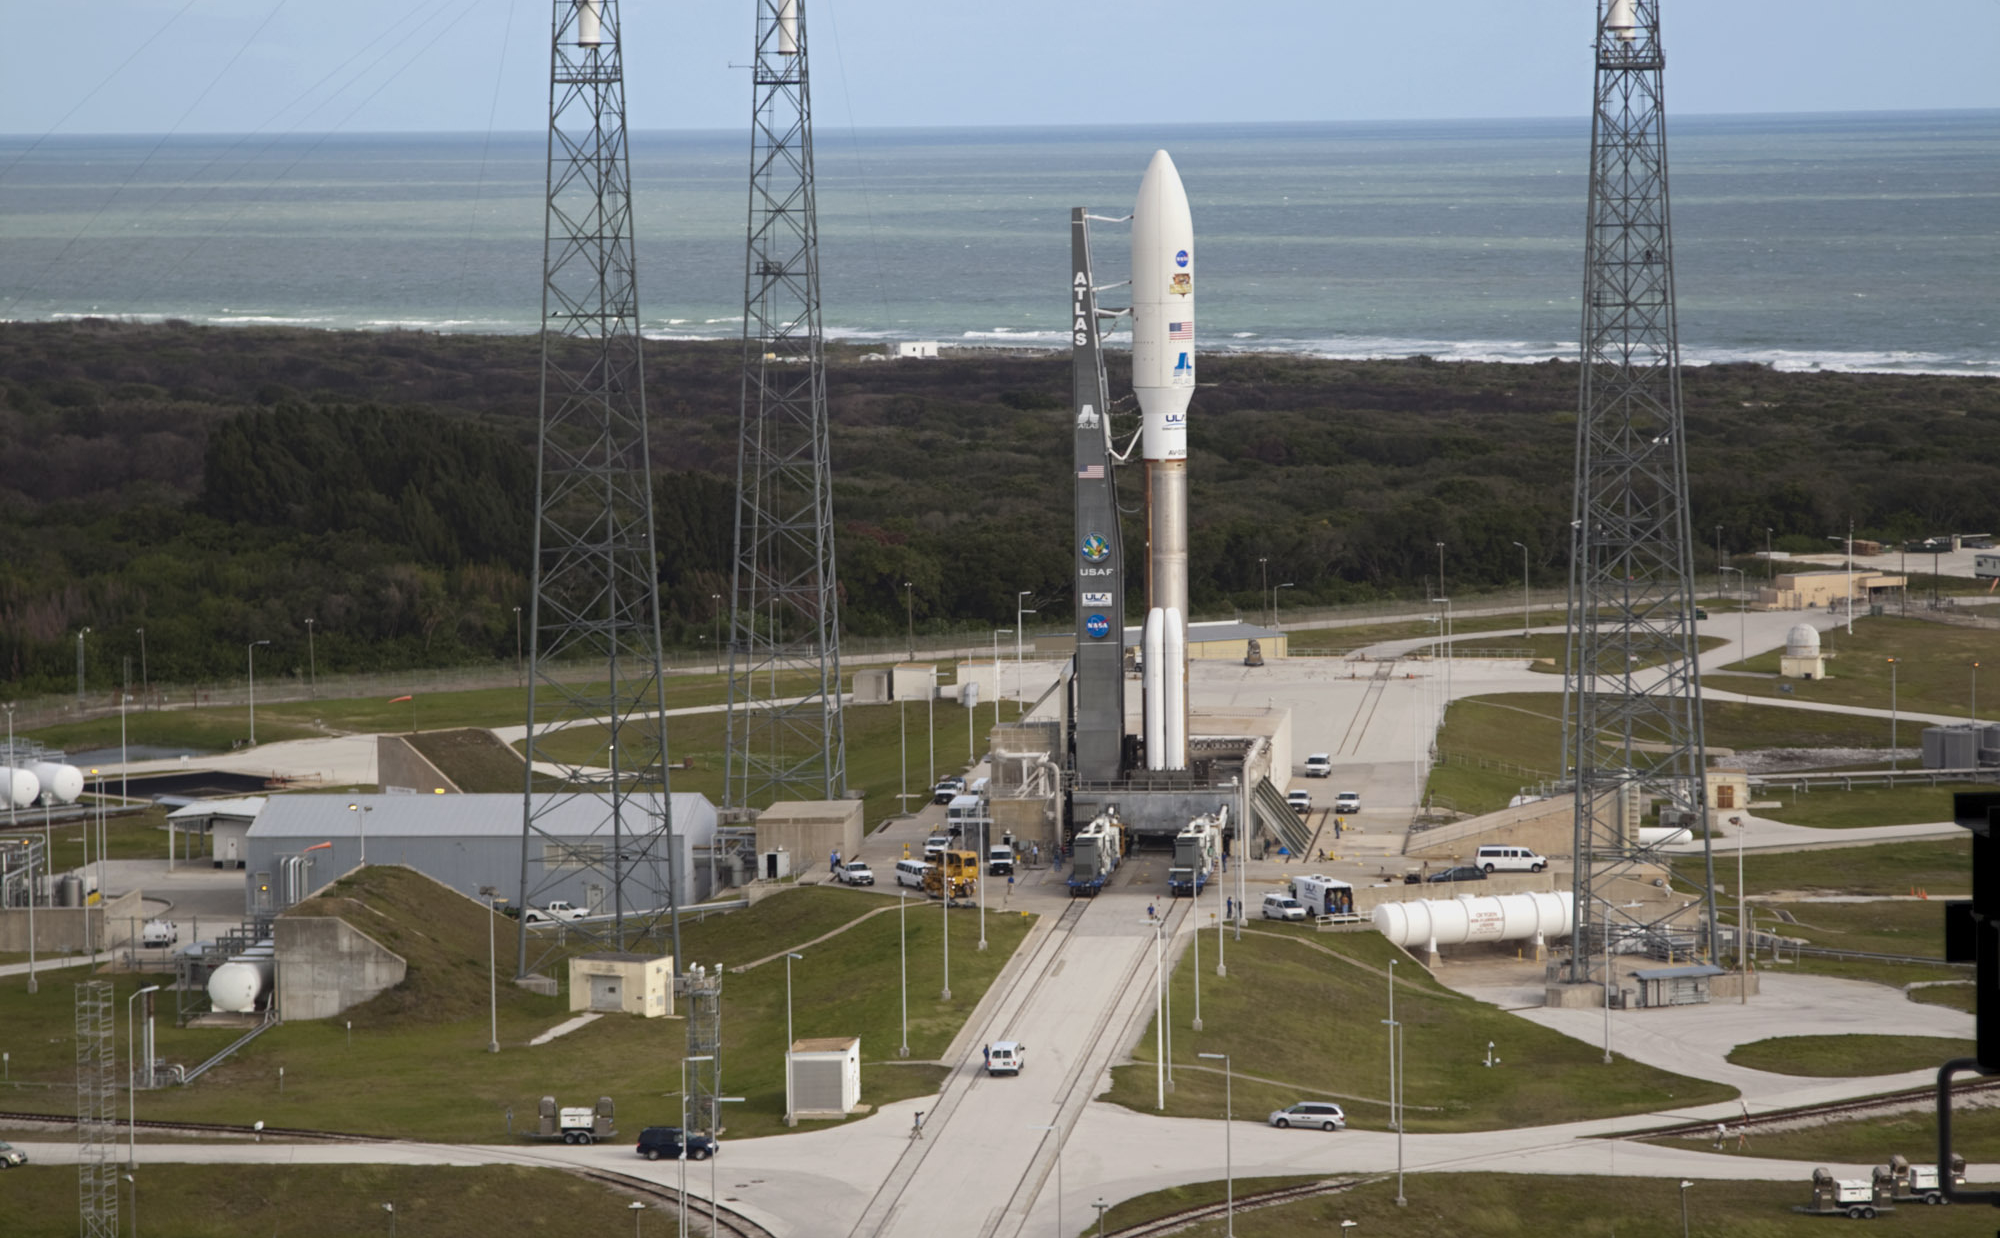 On Cape Canaveral Air Force Station in Florida, the 197-foot-tall United Launch Alliance Atlas V rocket is in place at Space Launch Complex 41 after rolling out from the nearby Vertical Integration Facility (VIF).